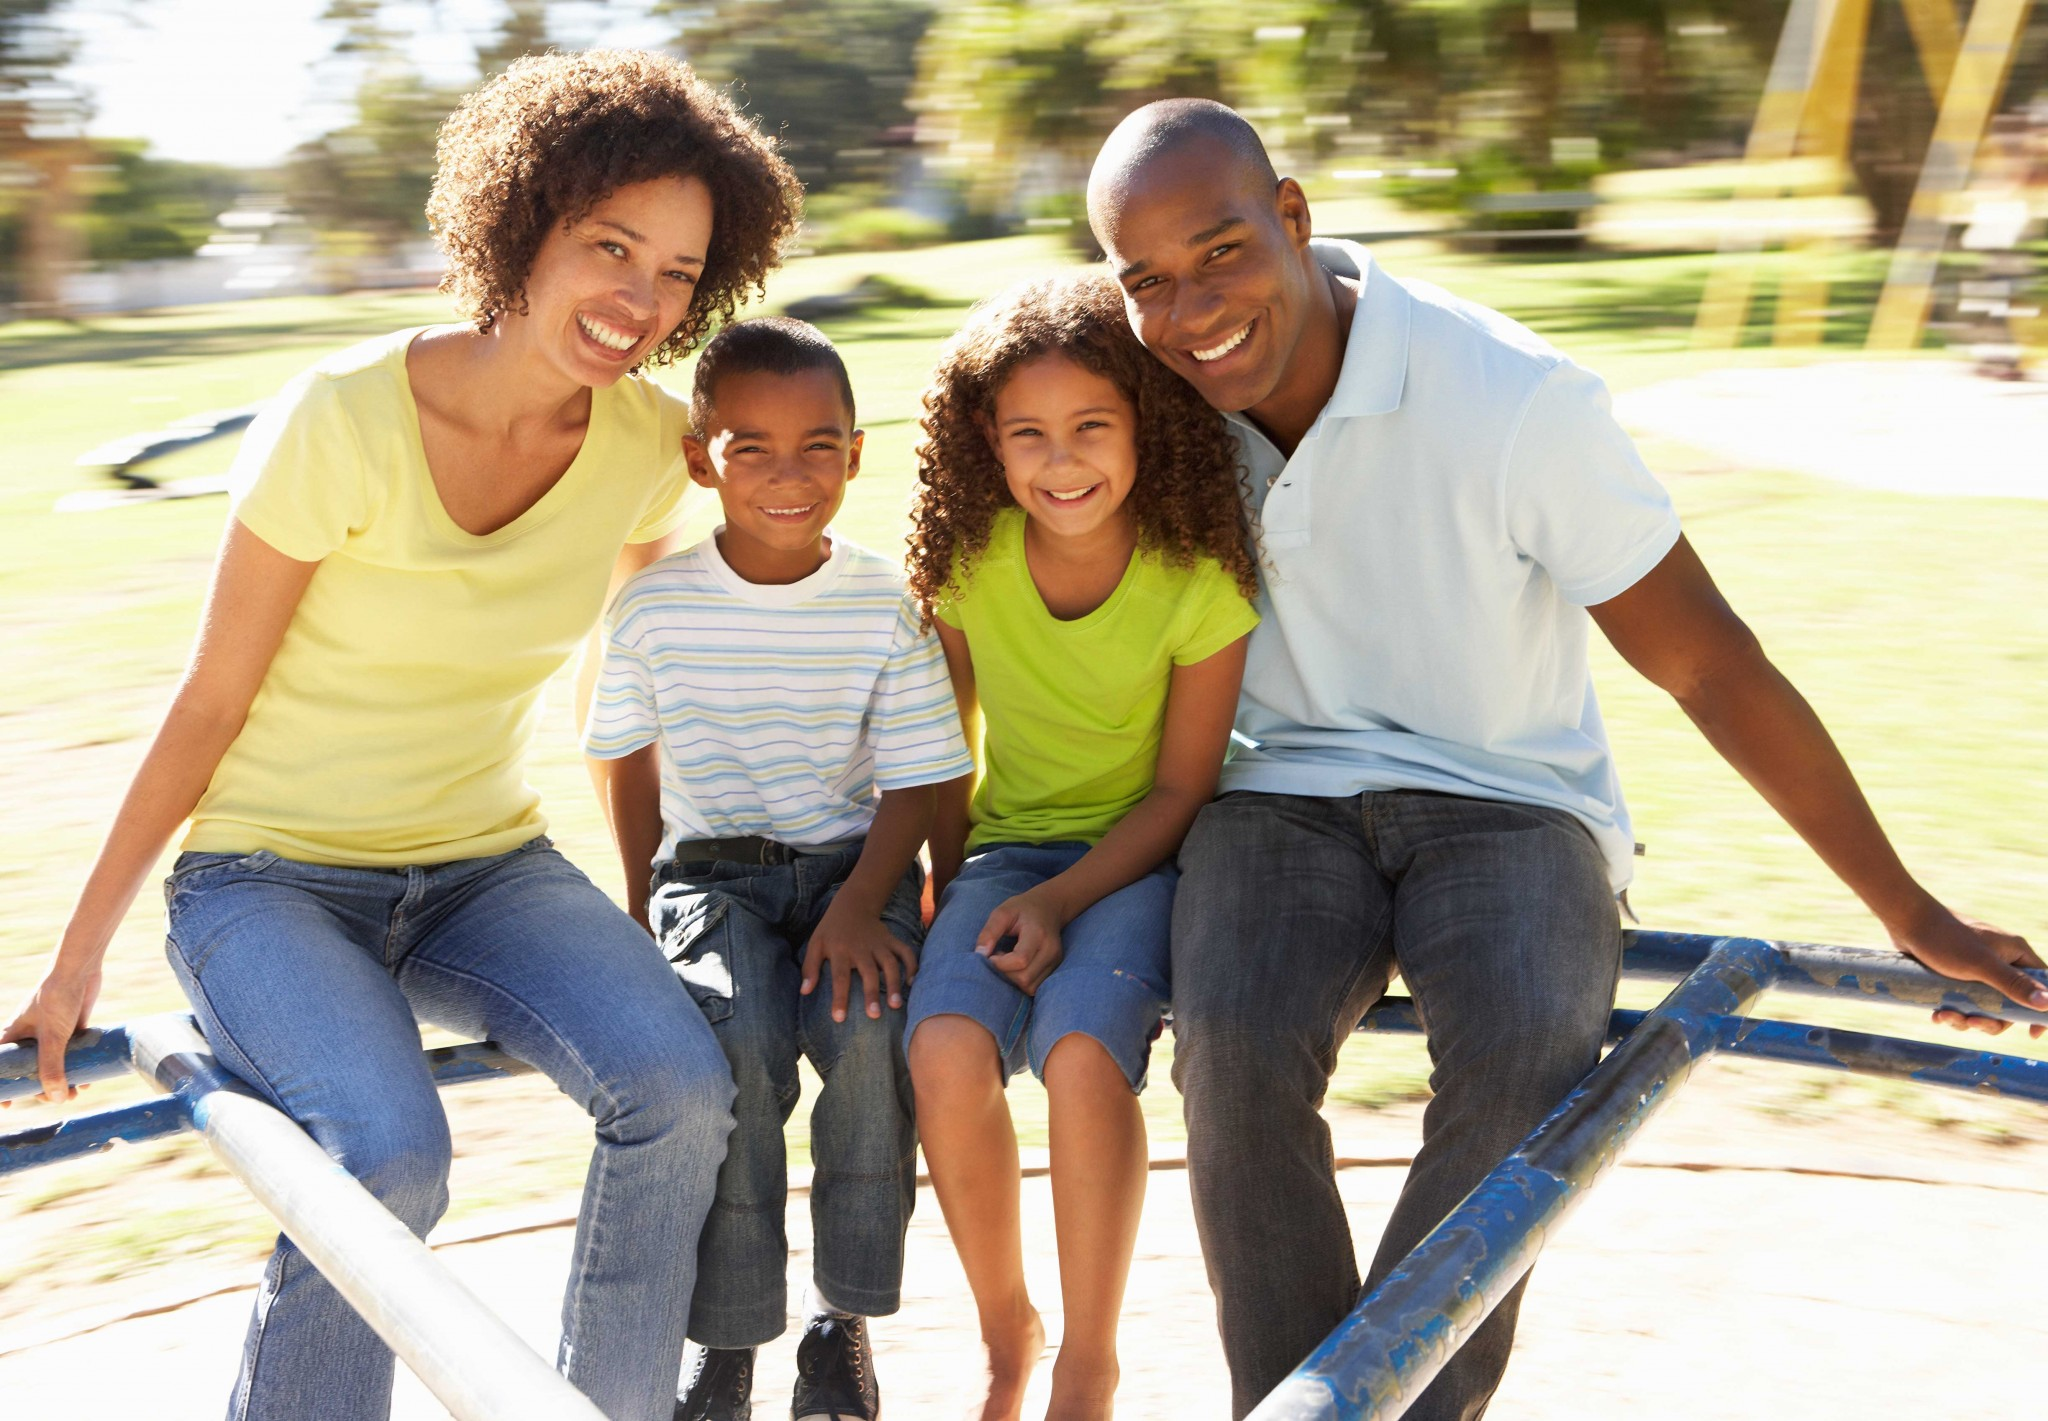 bigstock-Family-In-Park-Riding-On-Round-13919309